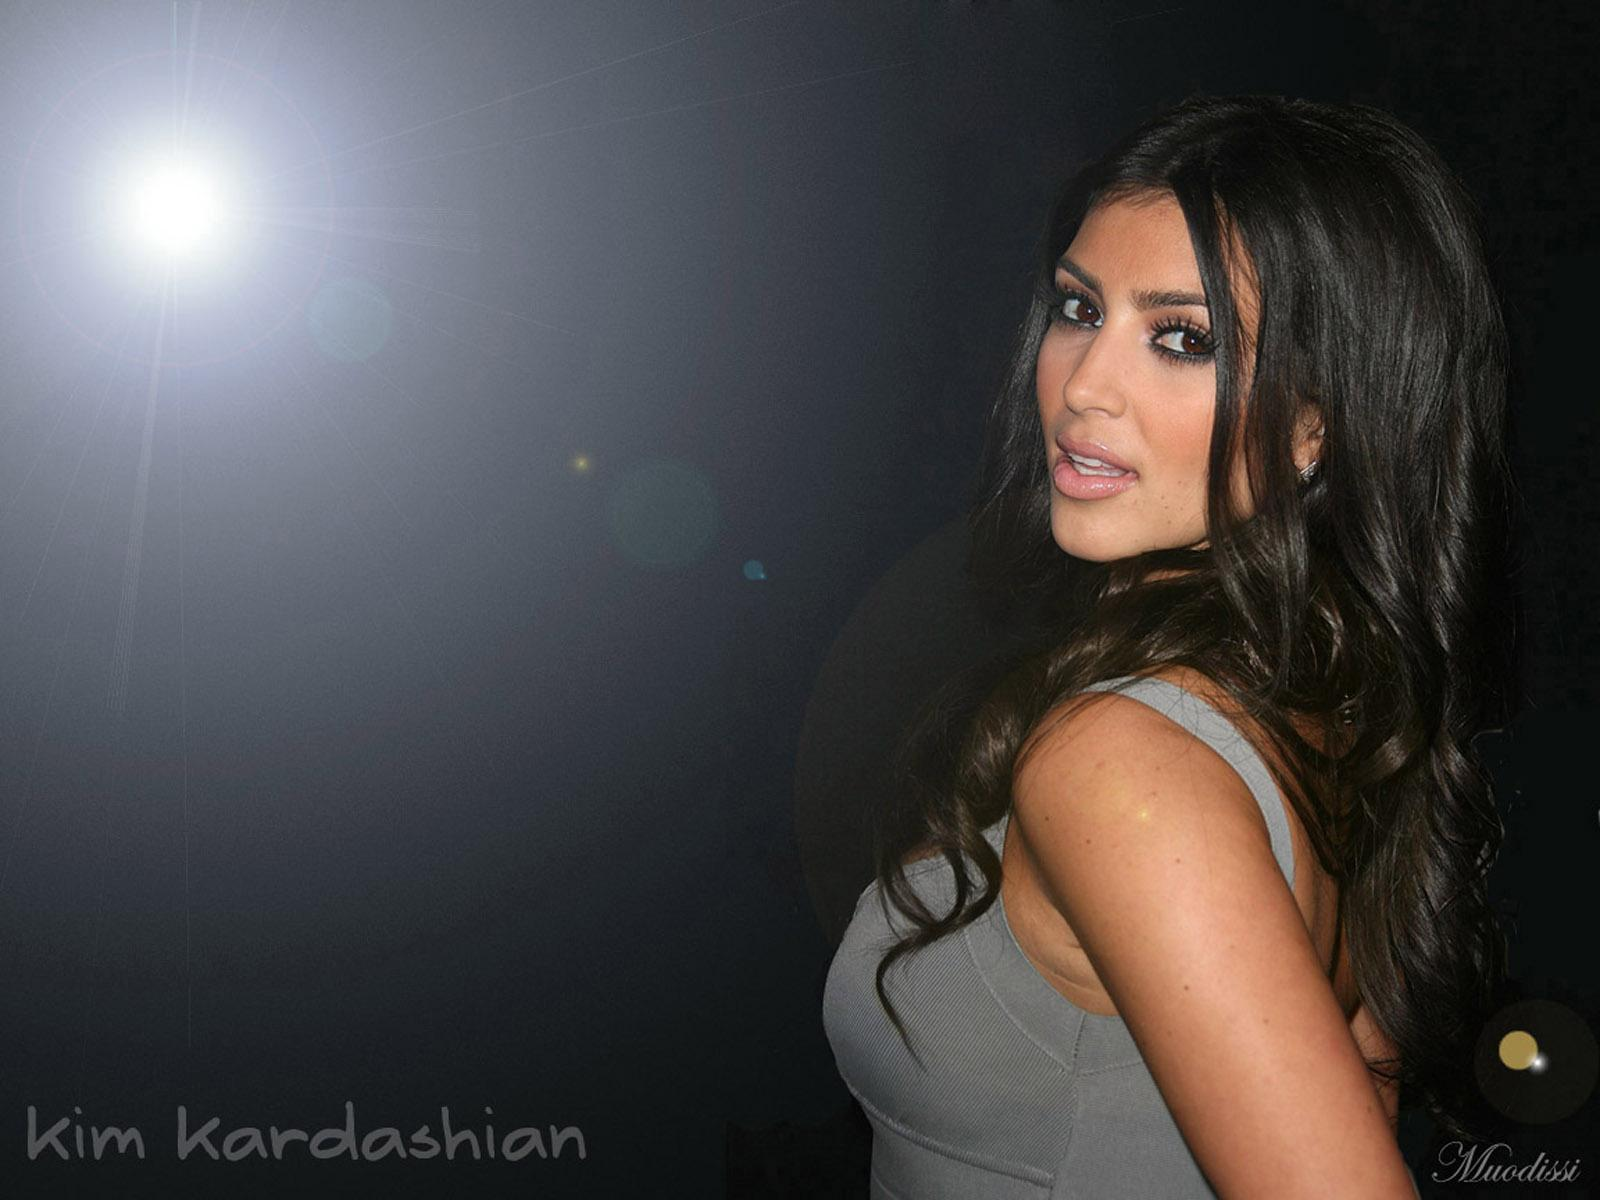 Kim Kardashian wallpapers Kim Kardashian stock photos 1600x1200